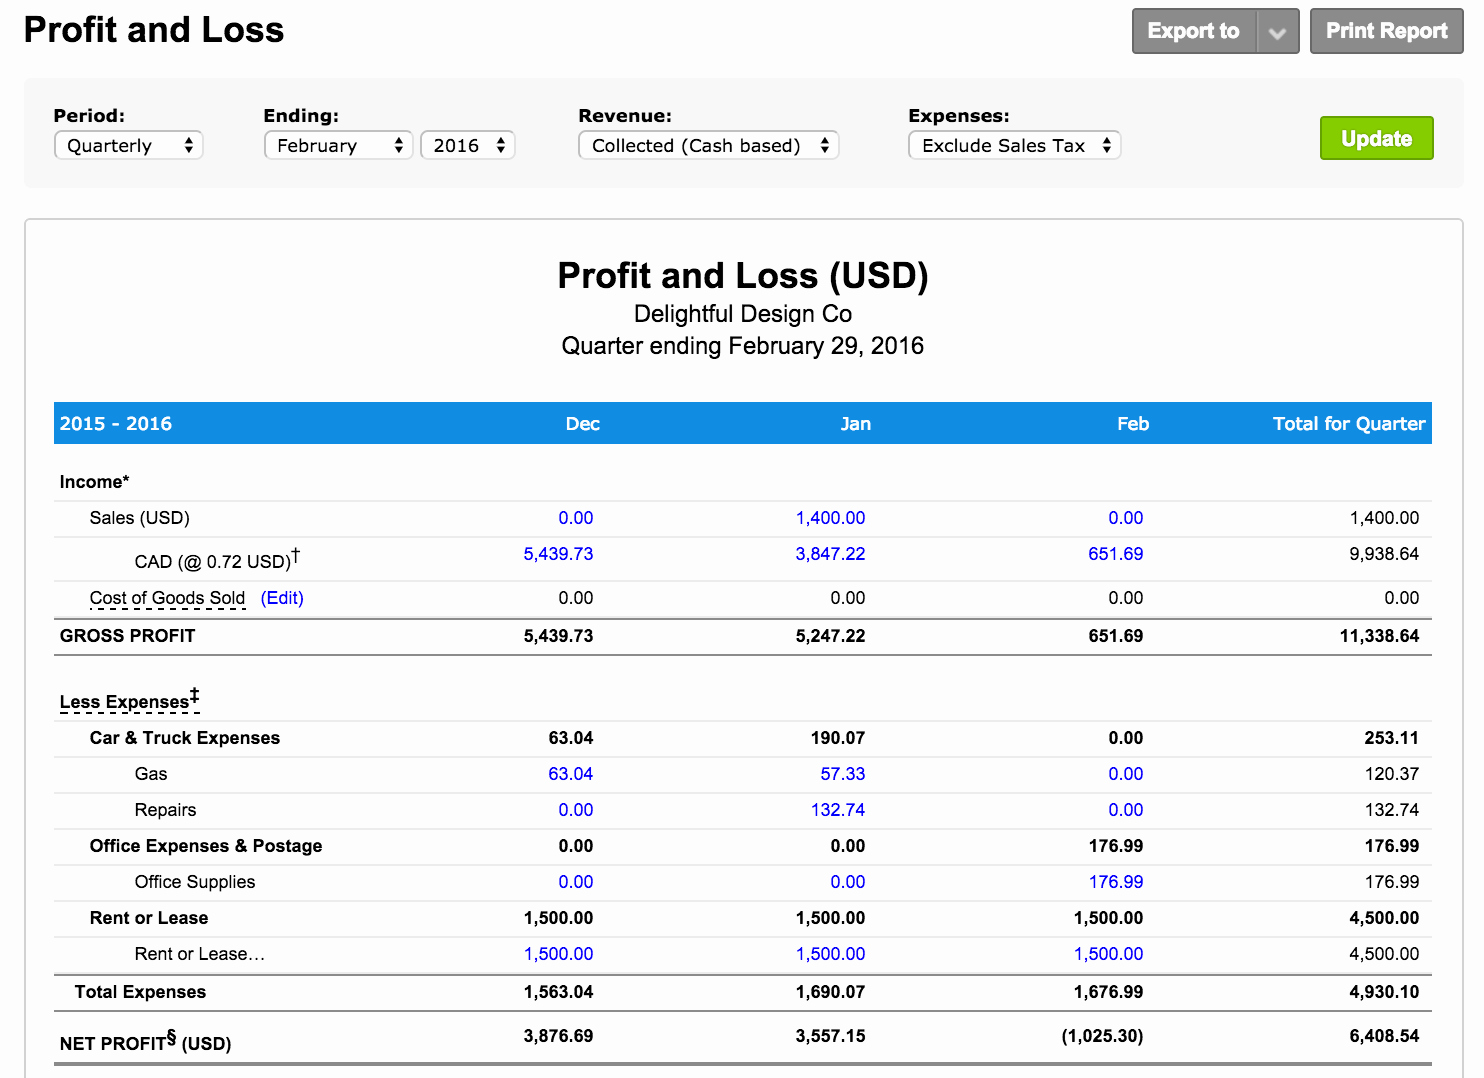 Profit and Loss Report Template Awesome What is A Profit and Loss Report